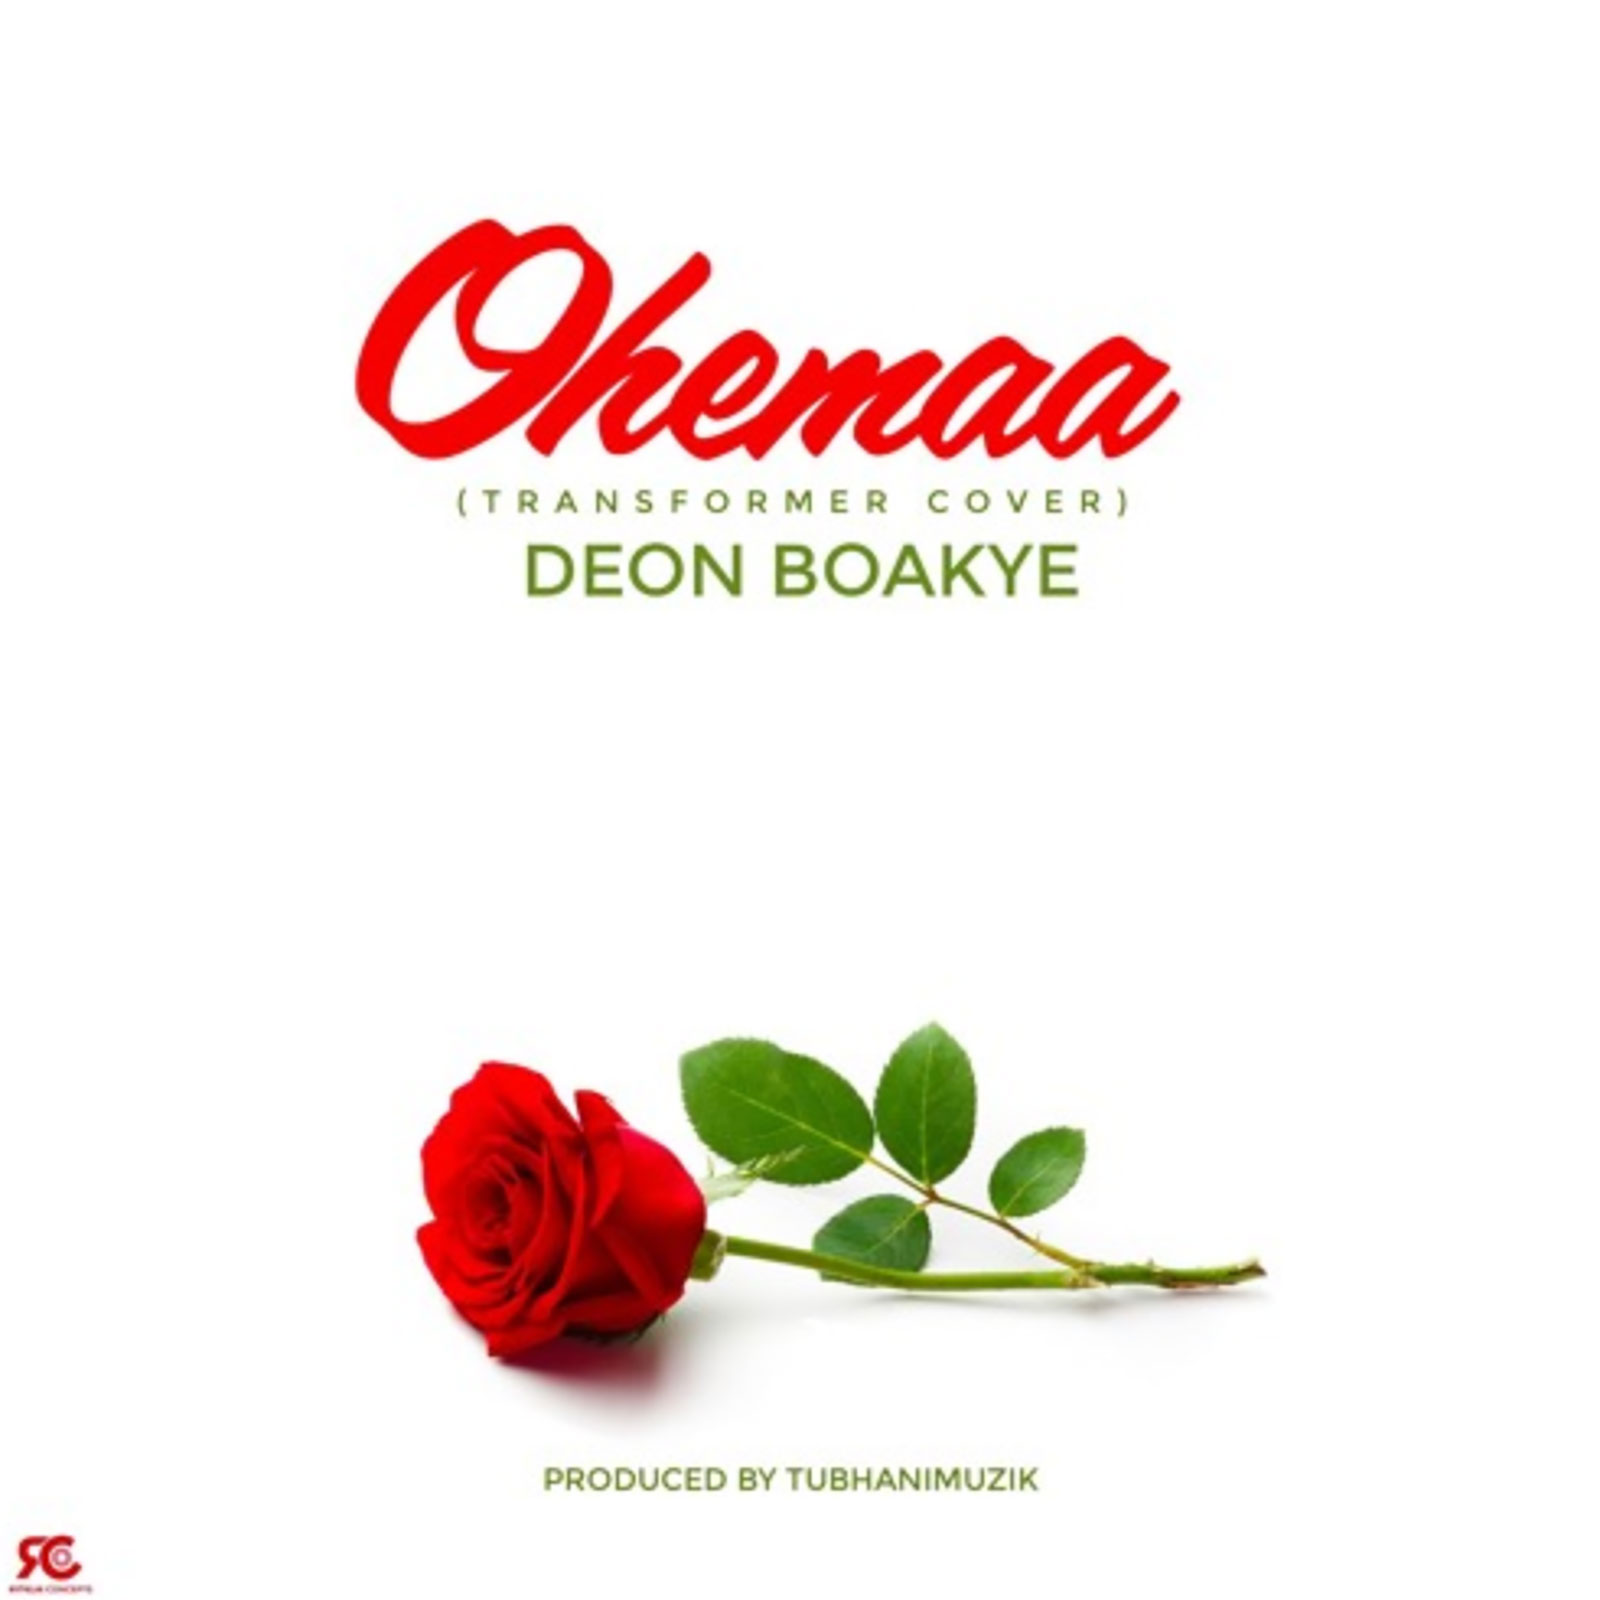 Ohemaa (Transformer cover) by Deon Boakye